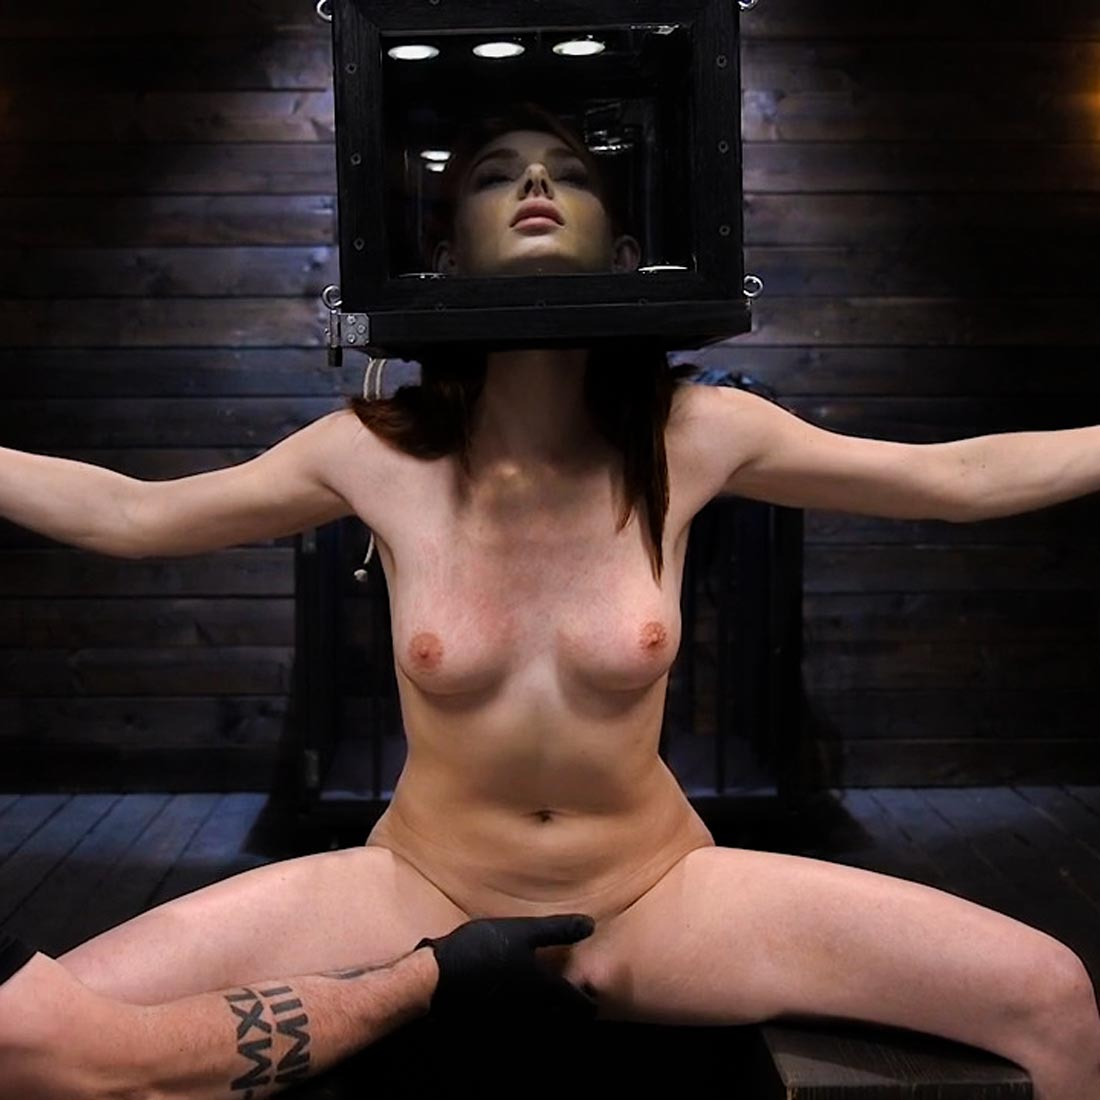 Lacy Lennon nude in Gorgeous Redhead's Sensual Submission. BDSM sex at Device Bondage.